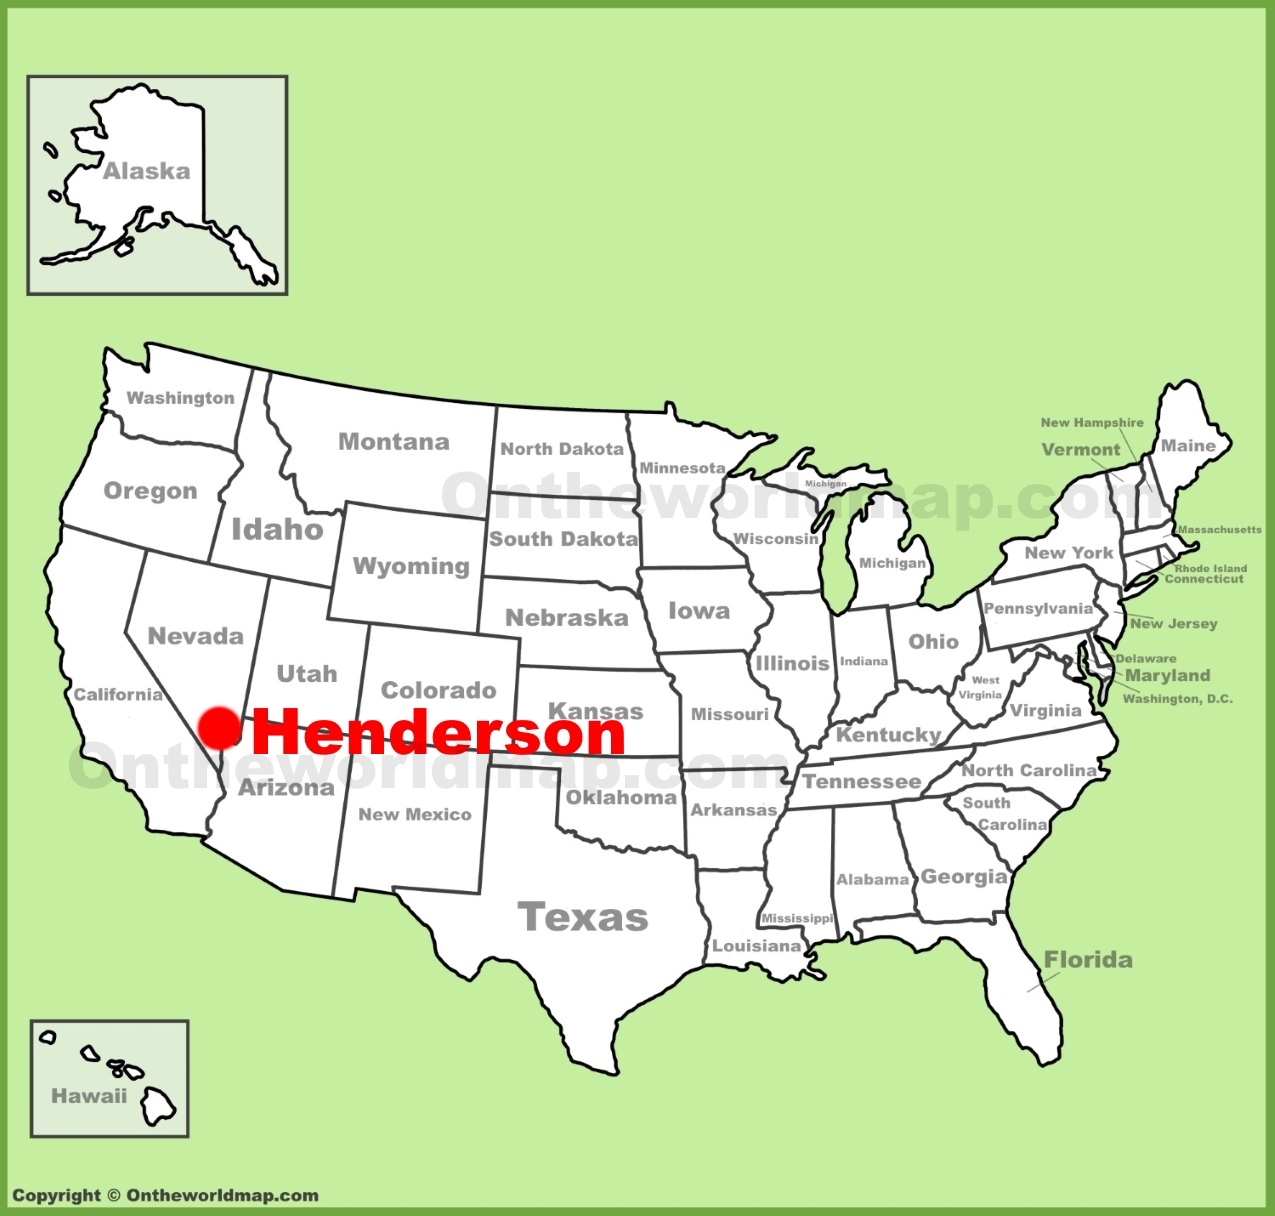 Henderson Location On The U S Map